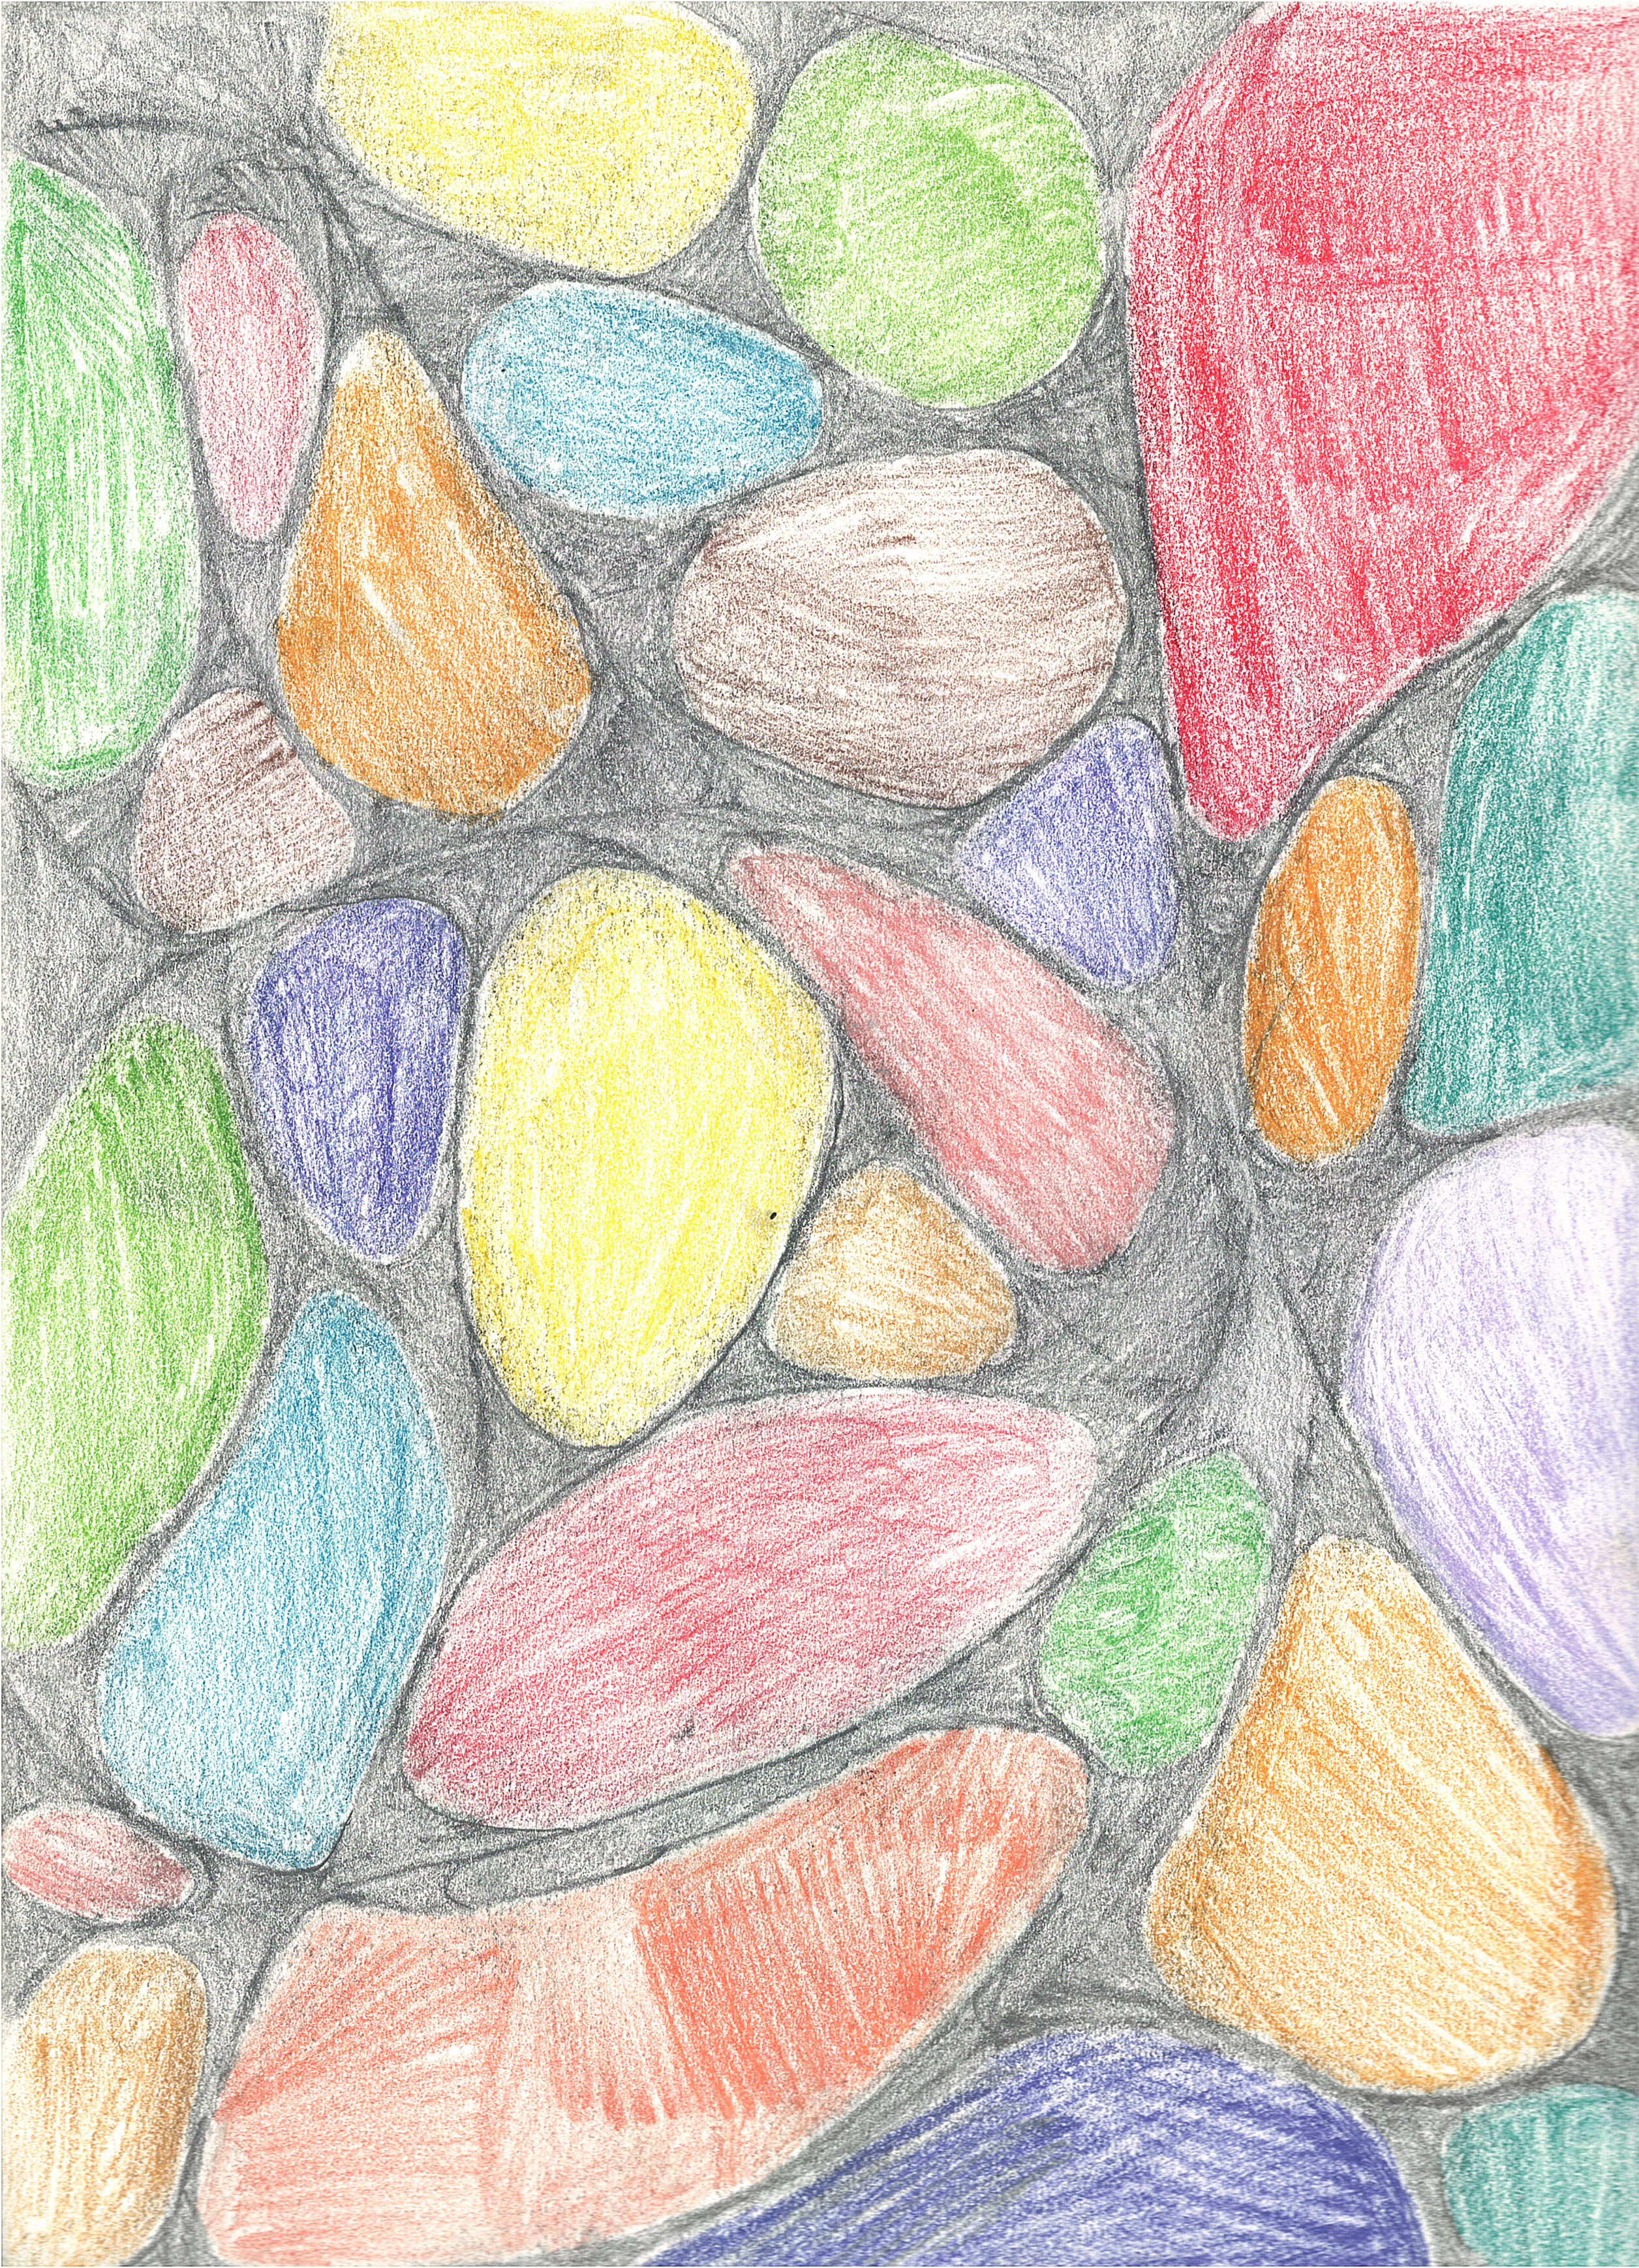 Drawing (colored stones)